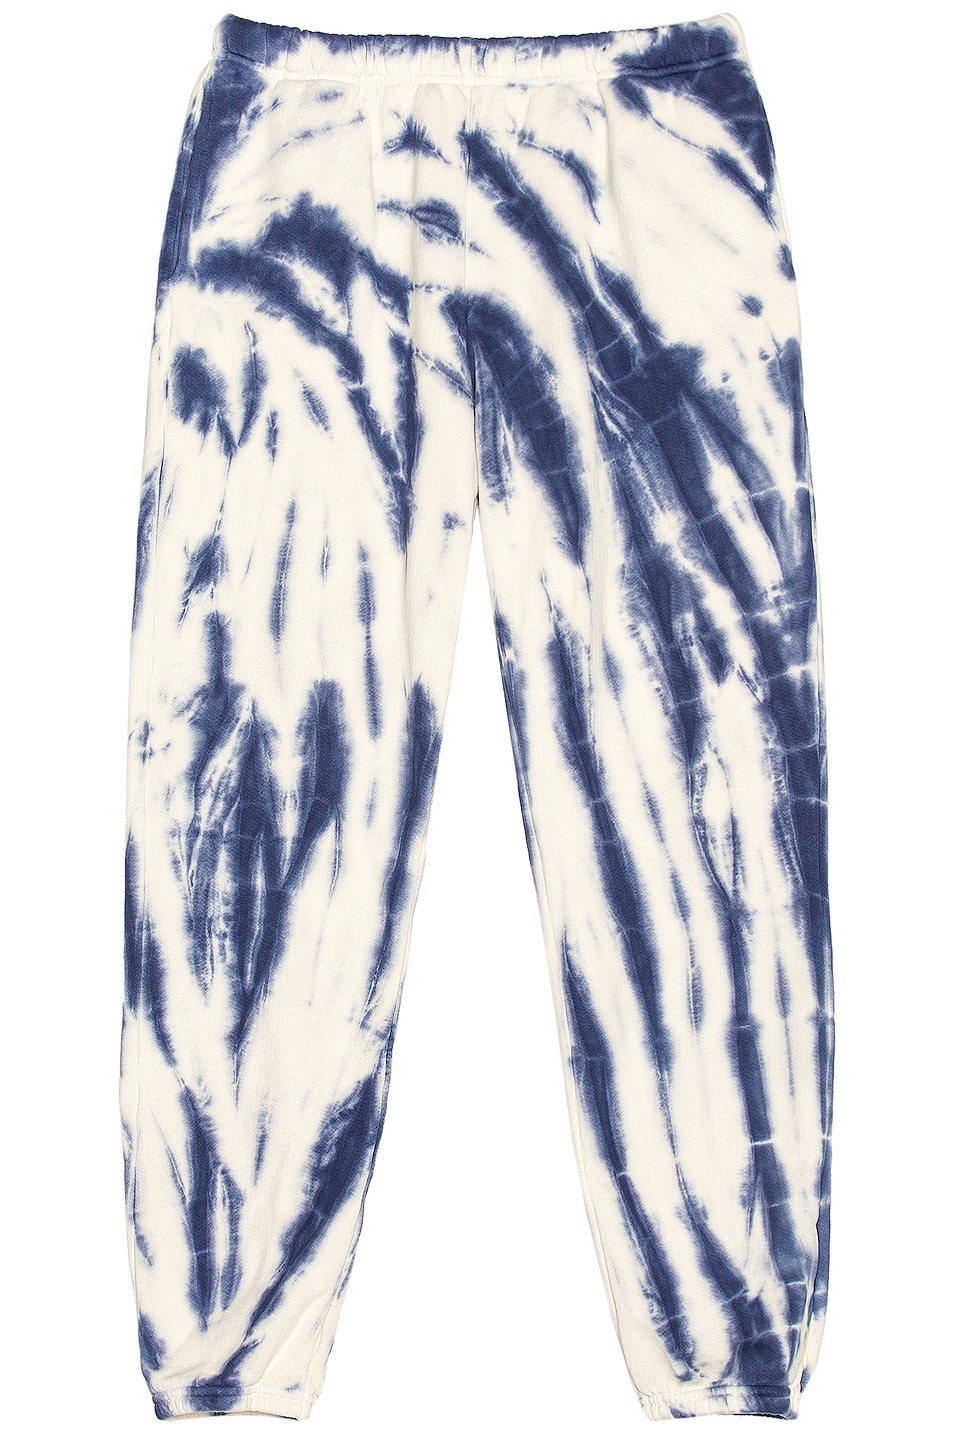 Image 1 of Les Tien Classic Sweatpant in Navy & Ivory Tie Dye